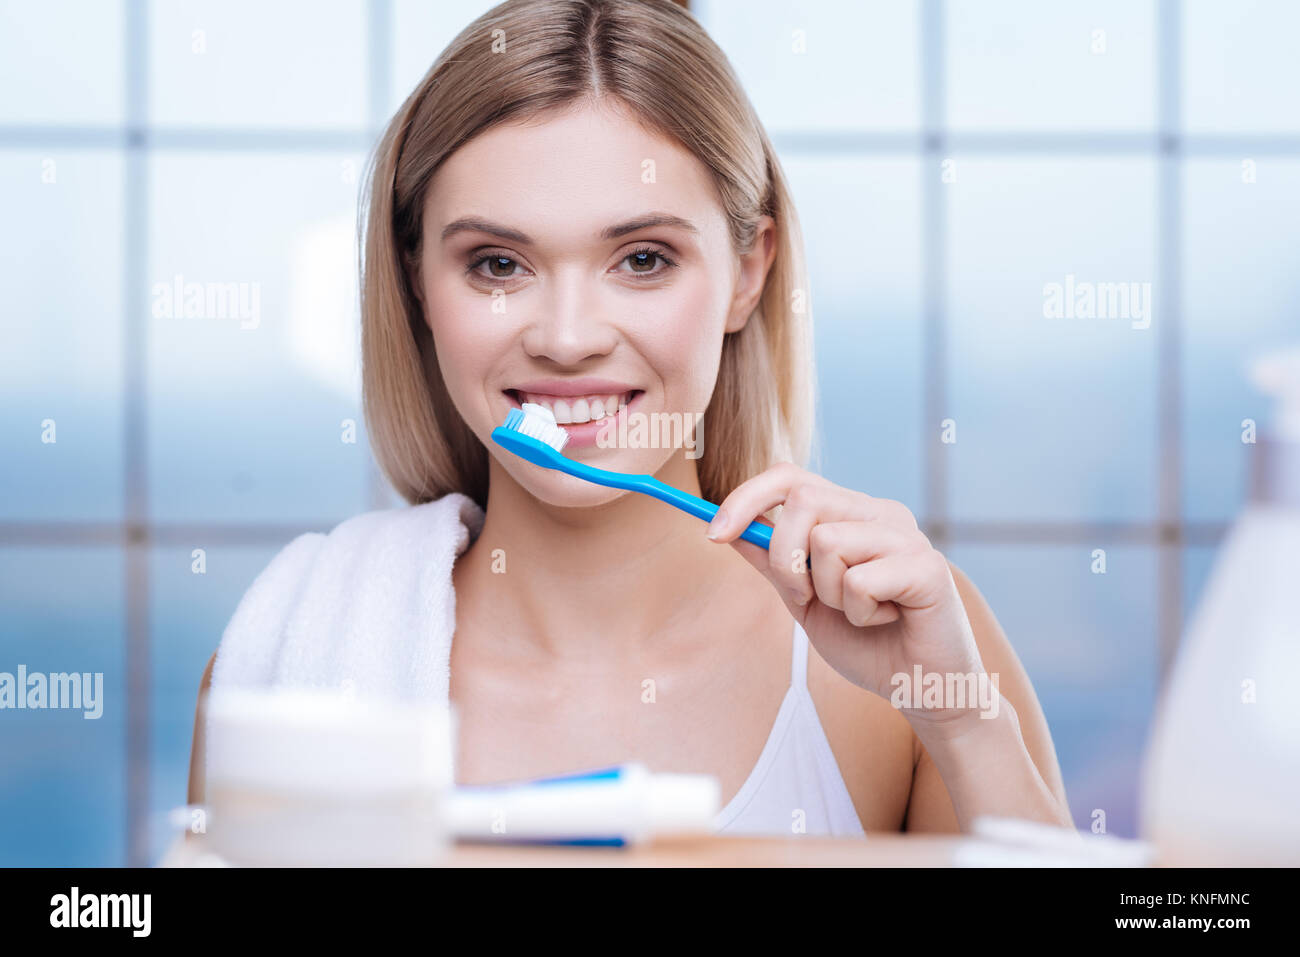 Upbeat young woman brushing her teeth - Stock Image